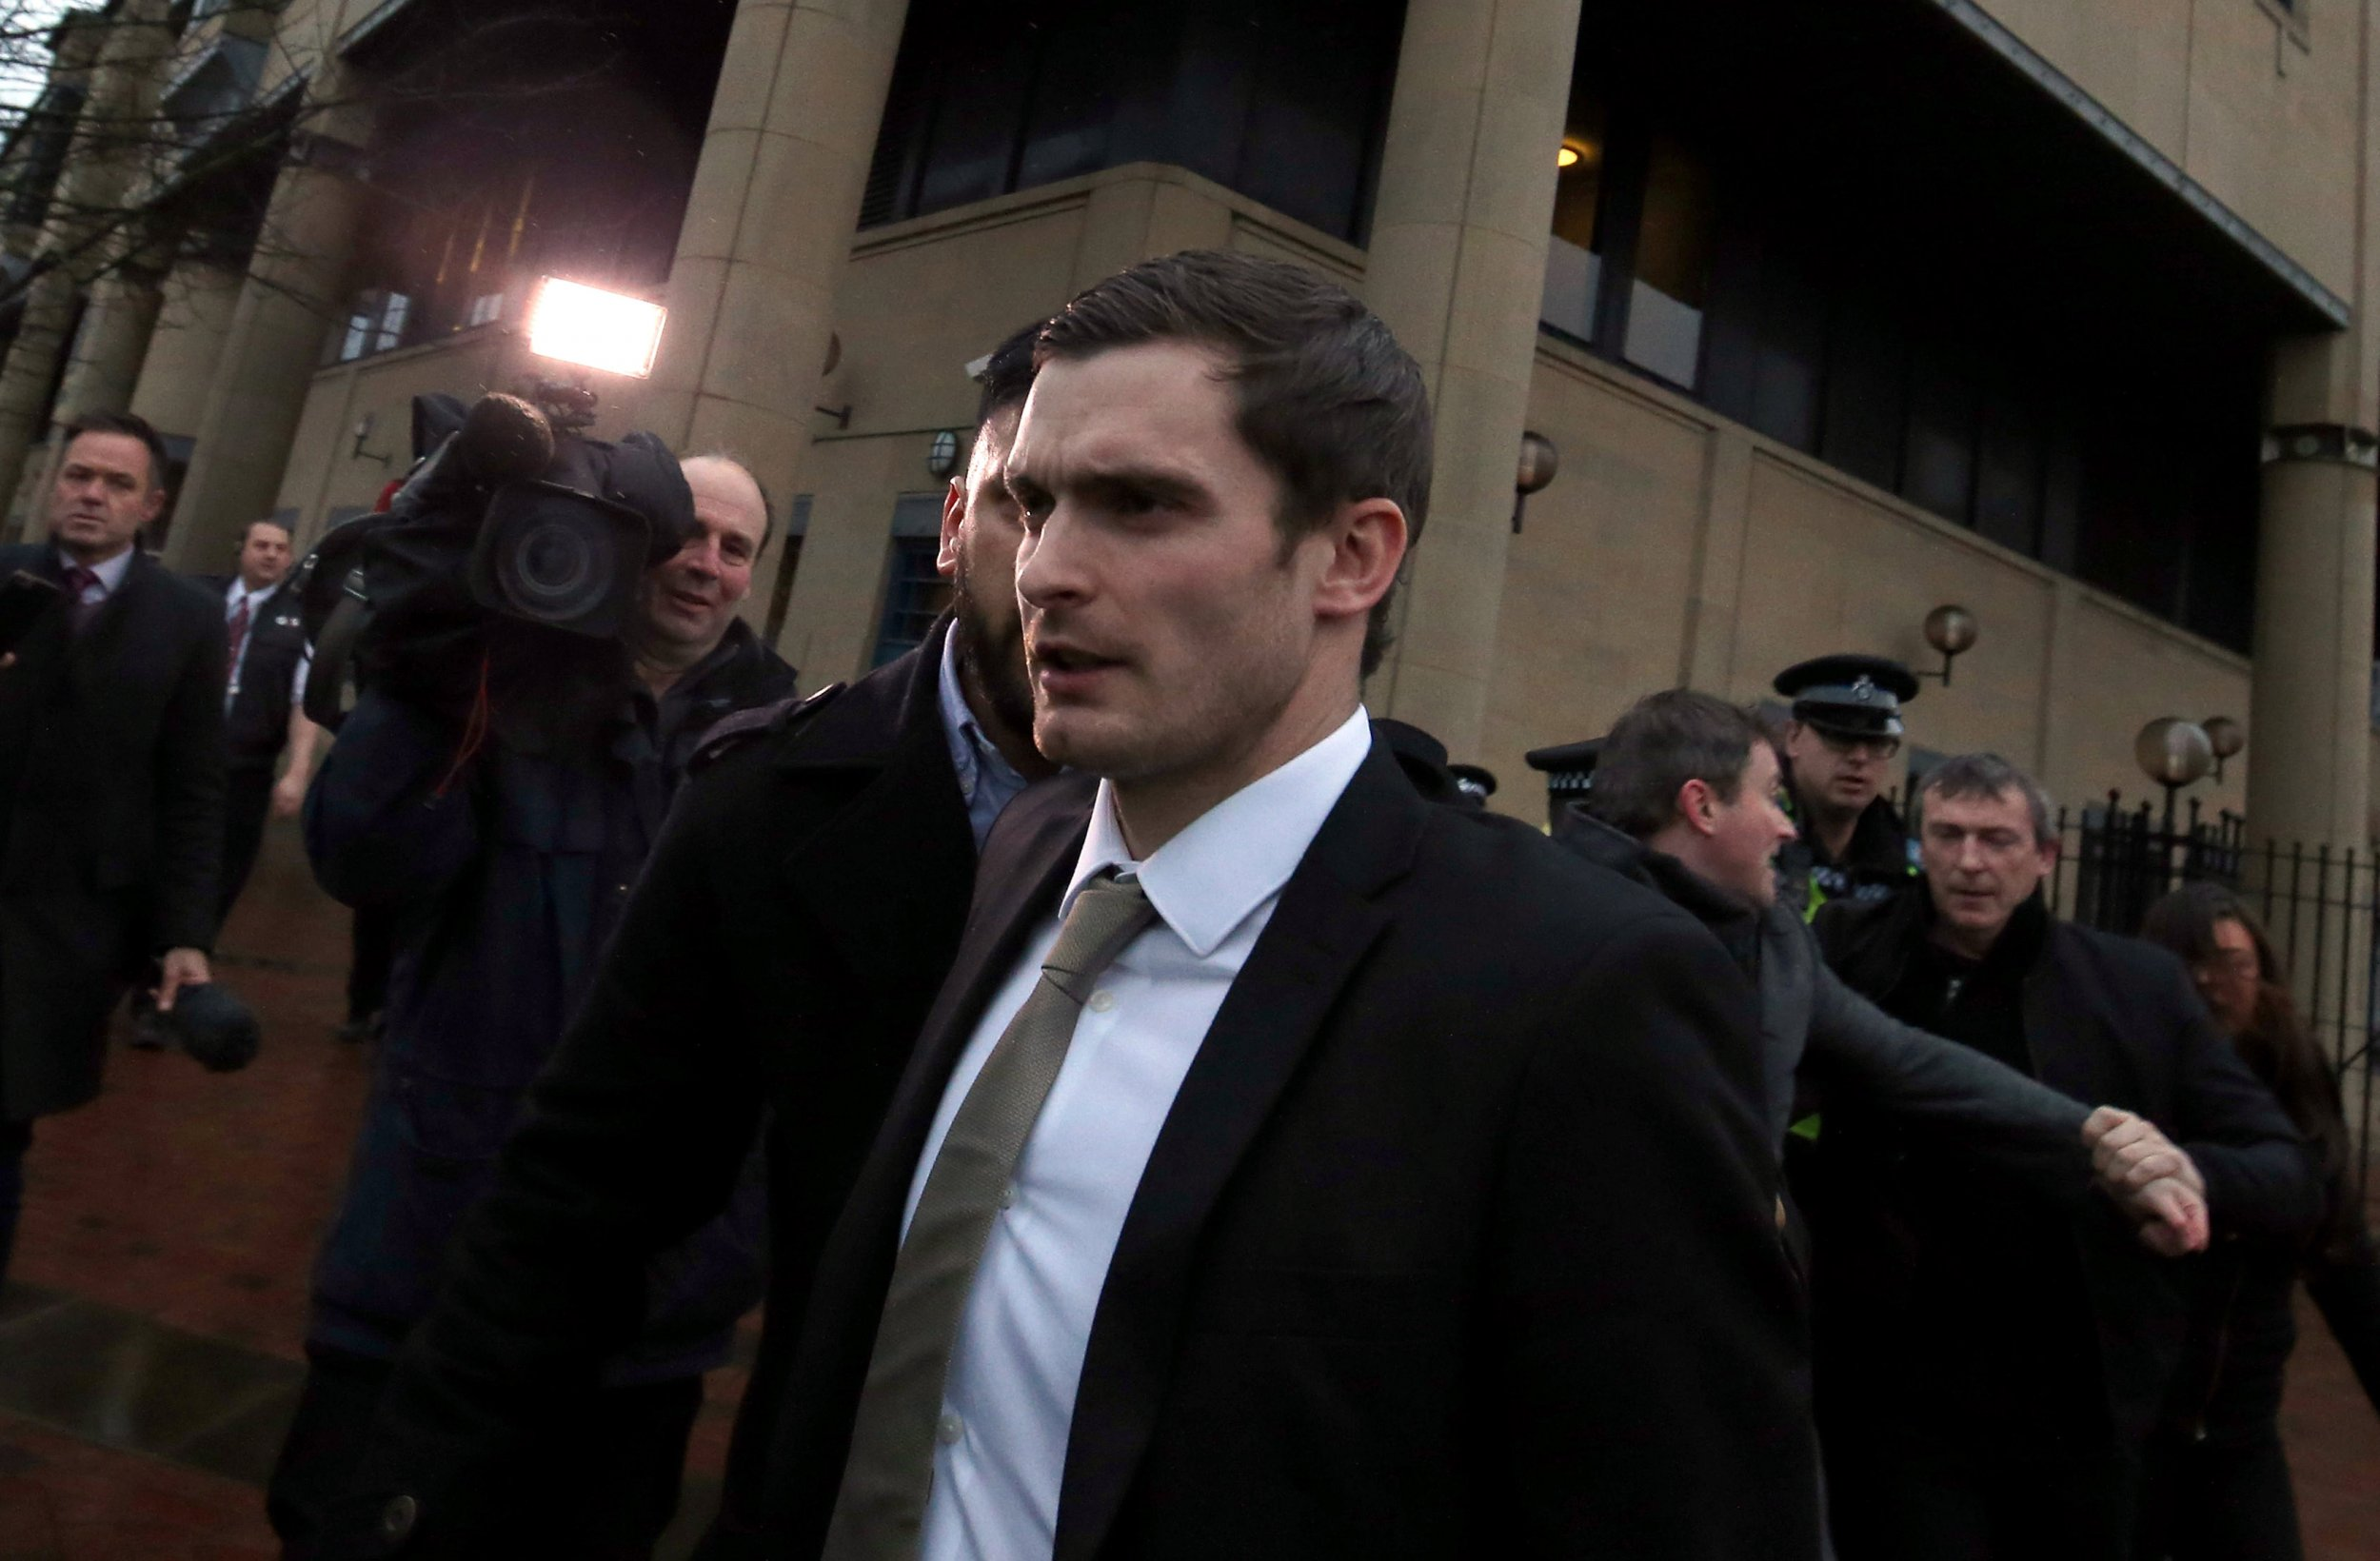 Adam Johnson was sentenced to six years' imprisonment at Bradford Crown Court for child sex offences.